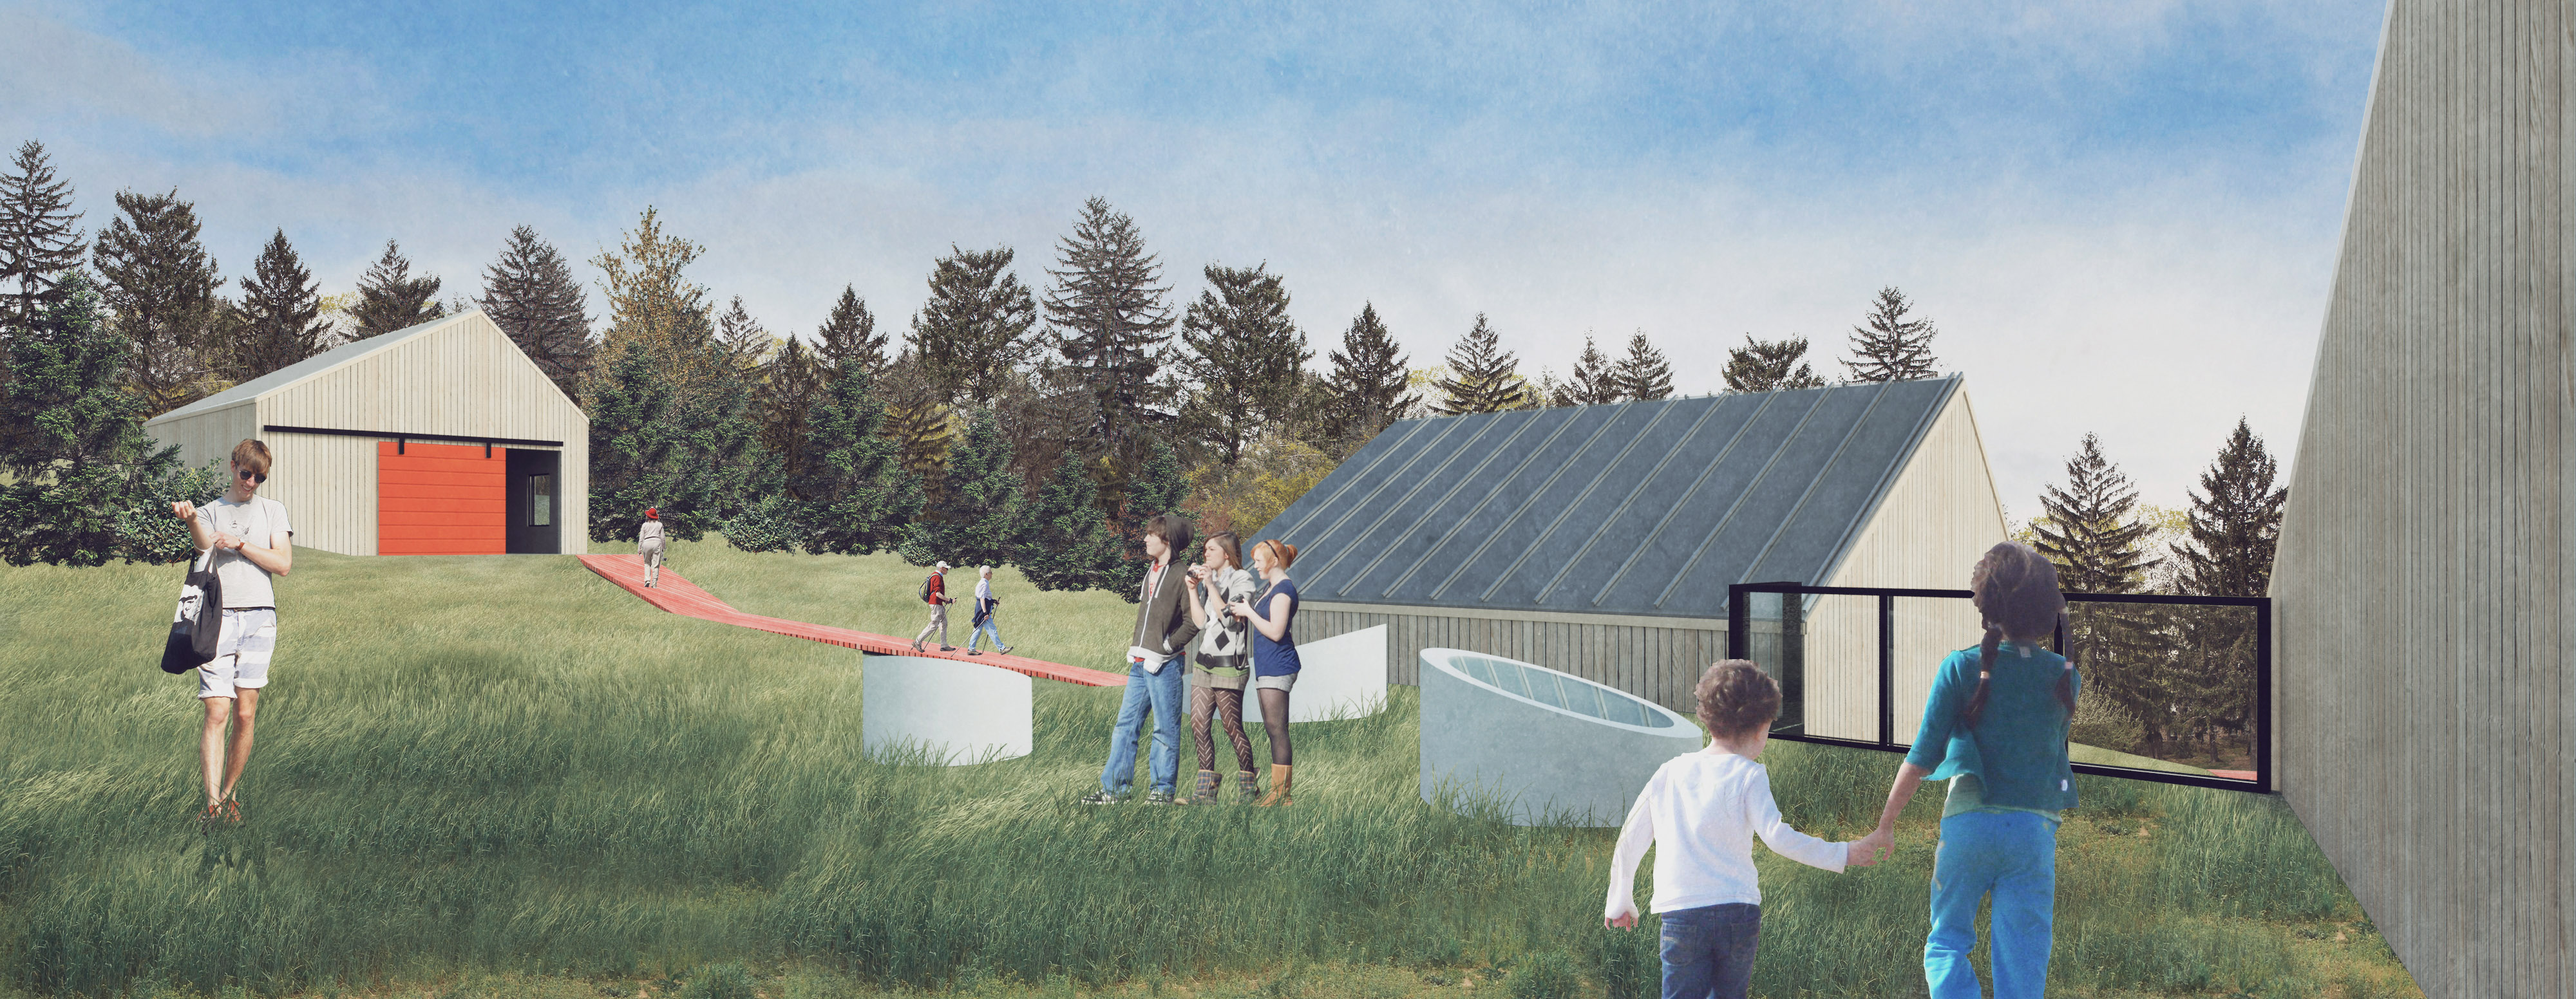 Green Roof Over Learning Space